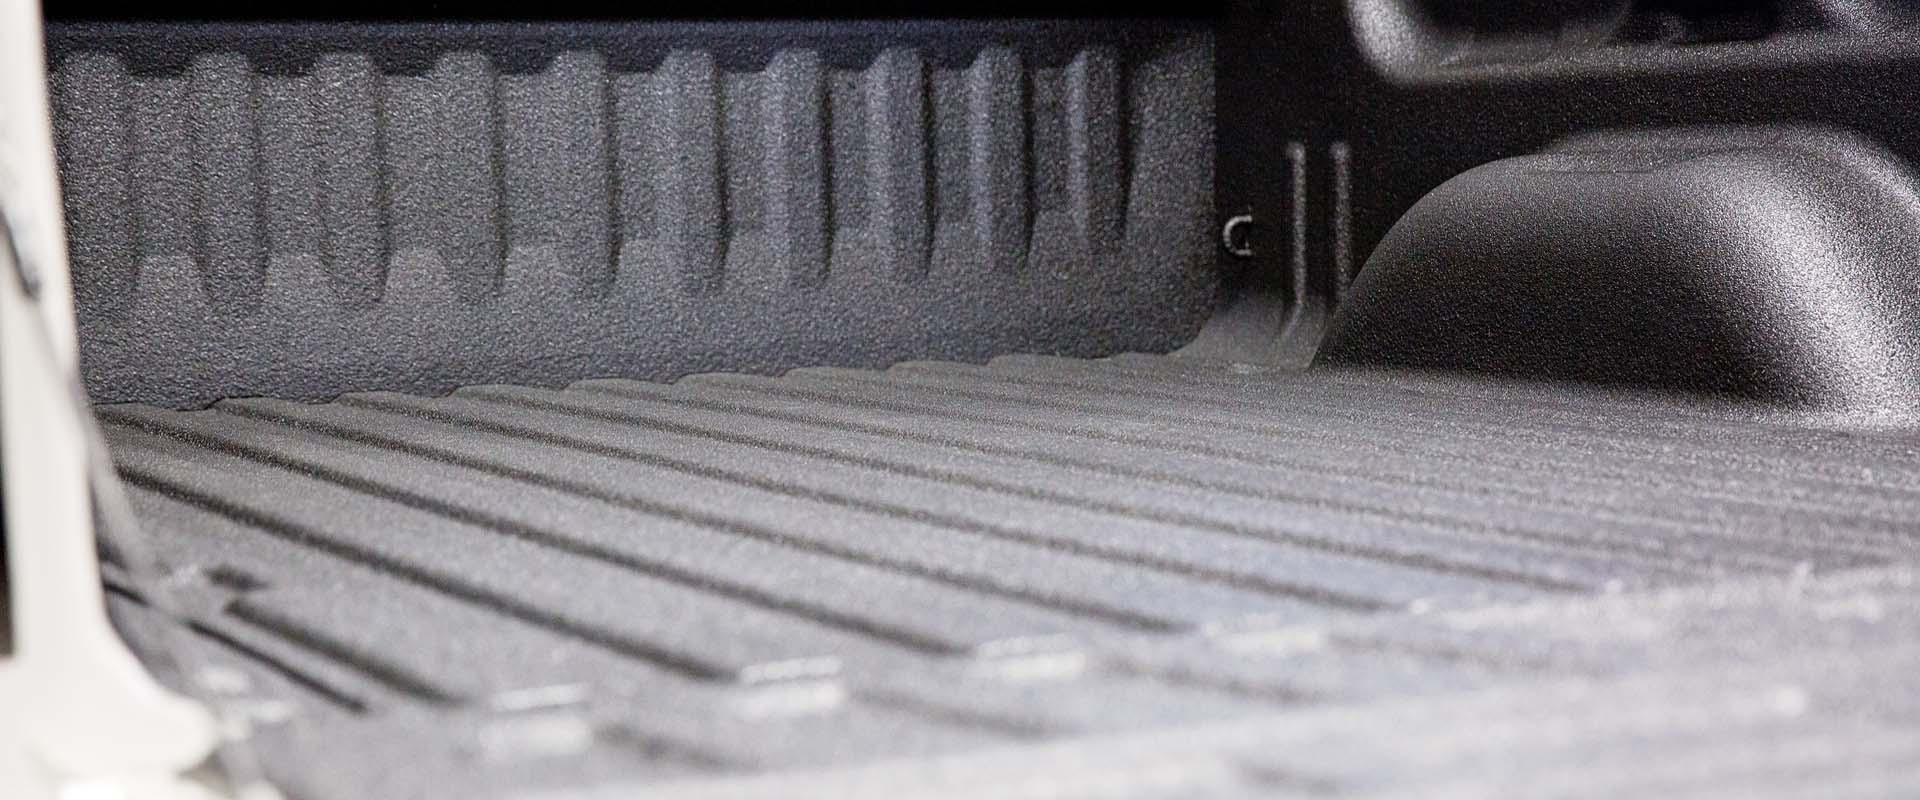 spray-in-bedliner-rhino-liner-truck-bed-liner